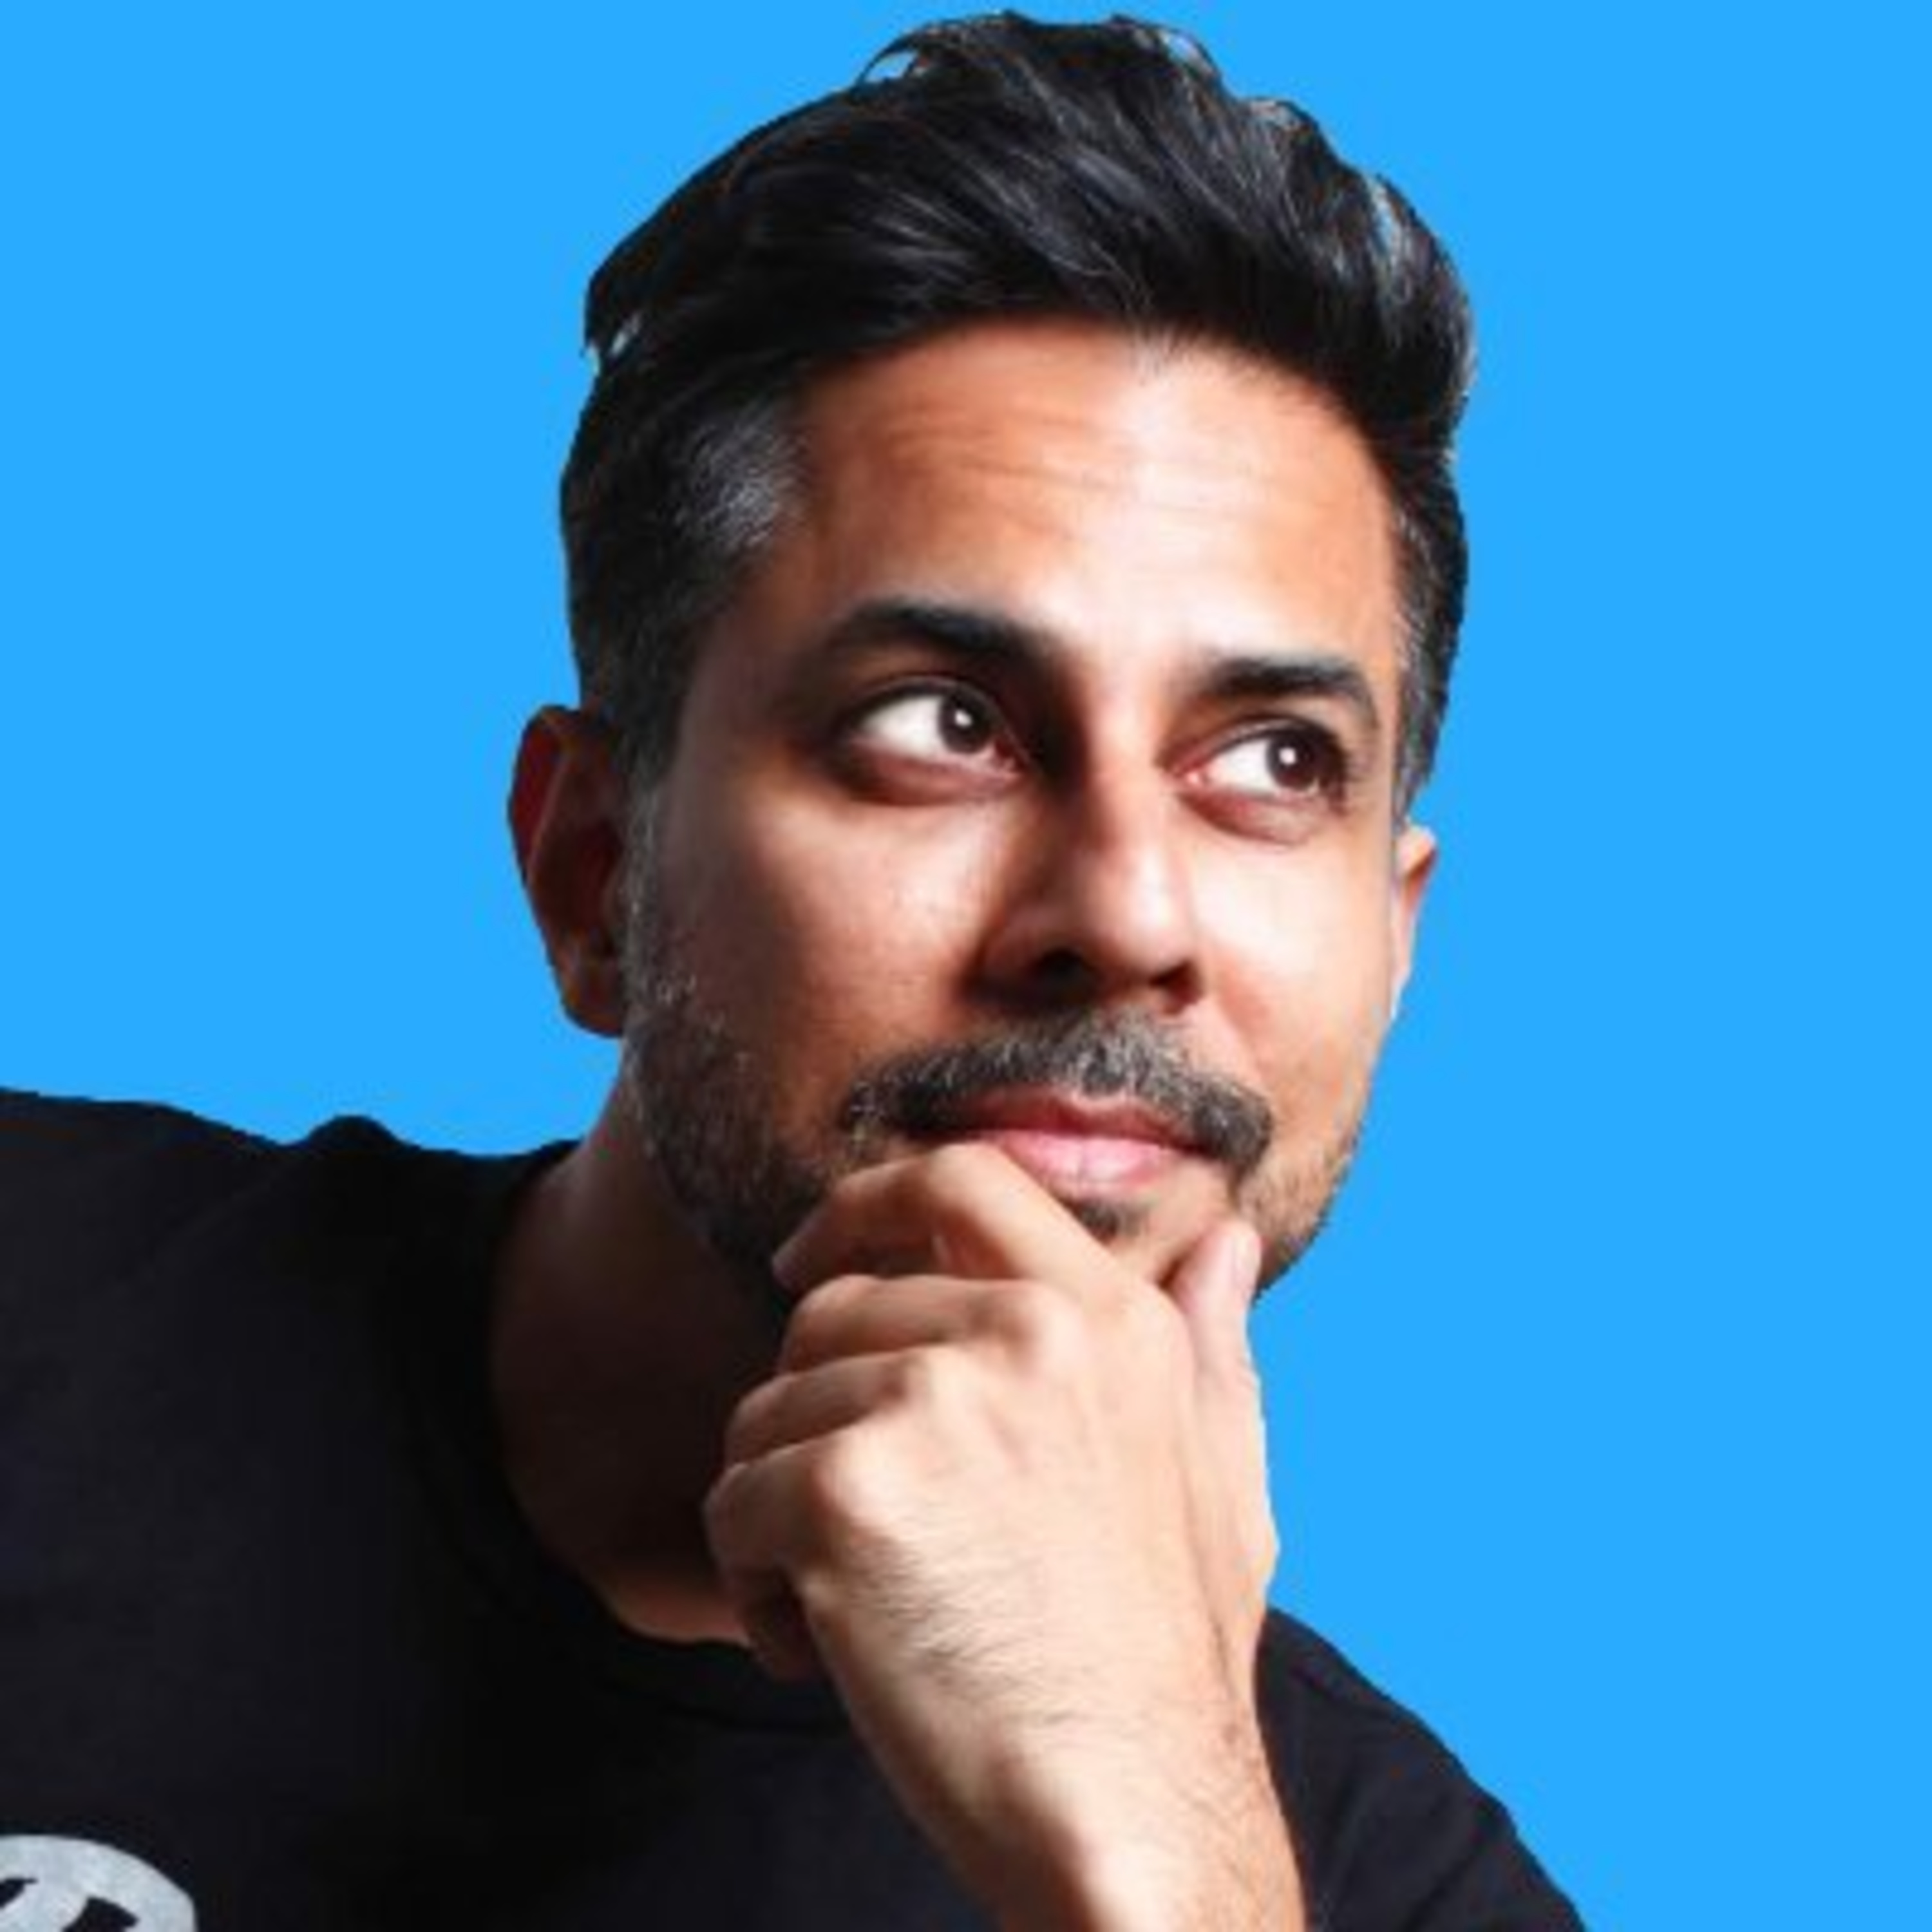 52. How to Transform Your Brain By 500% | Vishen Lakhiani, CEO of Mindvalley